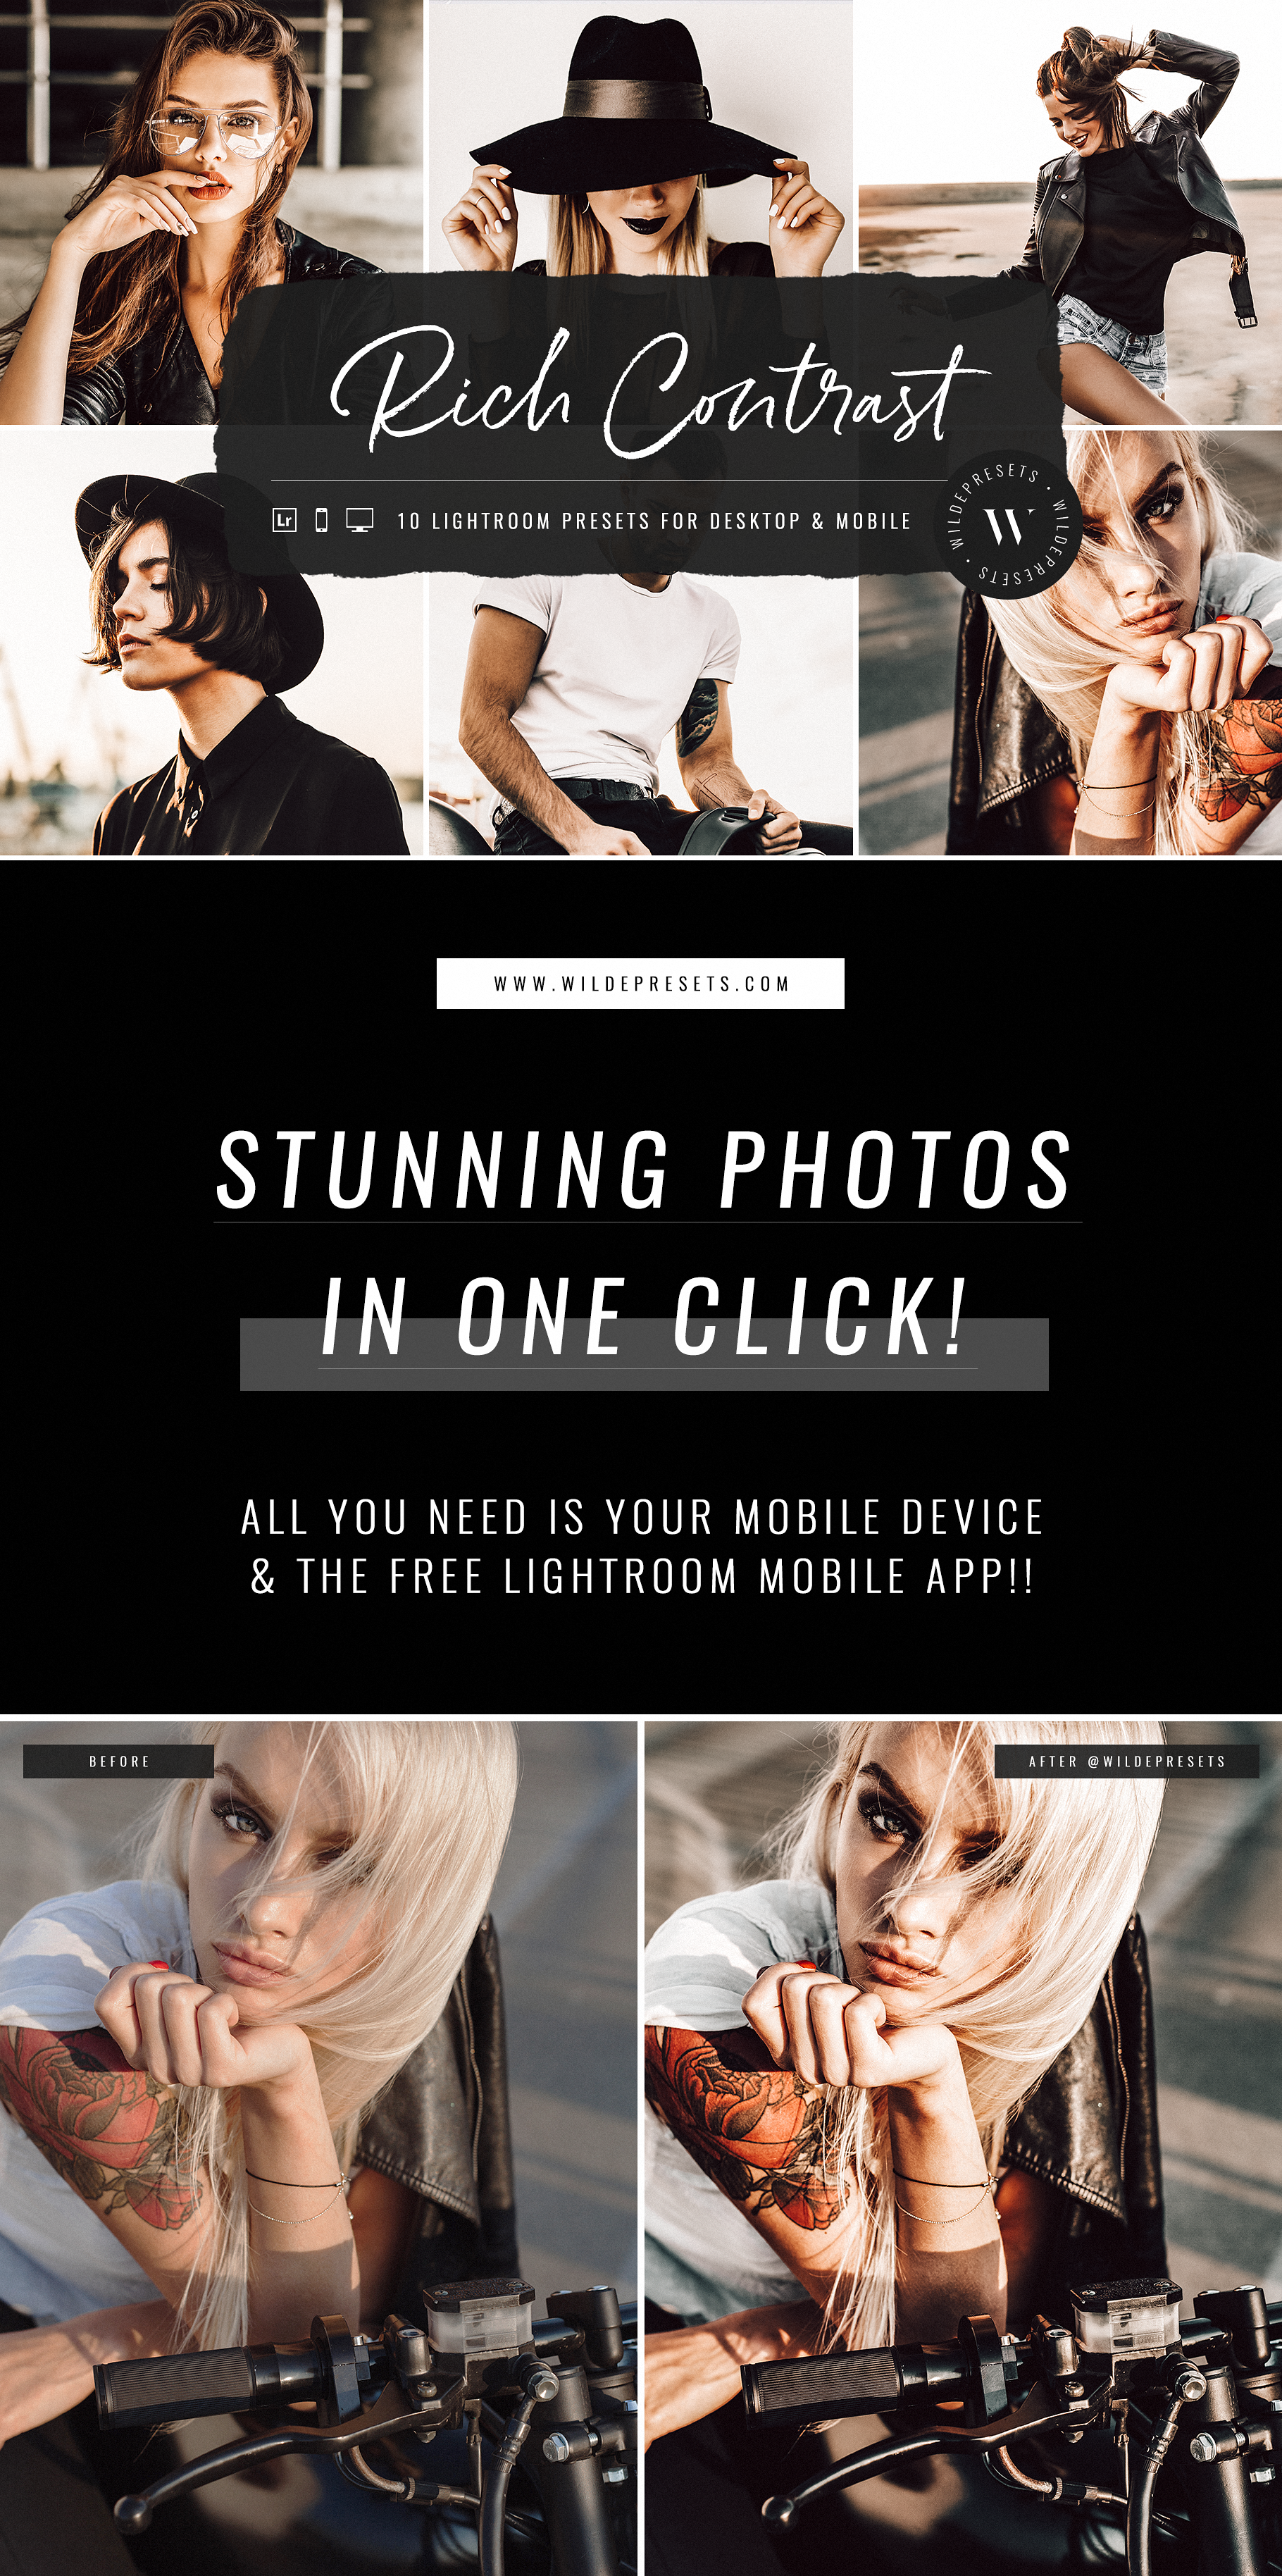 Tap into your inner rebel ⚡Create rich, high contrast photo edits with The Rich Contrast Preset Collection. Inspired by those deep, crisp Instagram feeds! Make your photos POP by enhancing + adding depth to all the tones (without compromising skin tones) with just a click! #rebelchic #rebelstyle #leatherjacket #tattoo #tattoos #presets #lightroompresets #prettypresets #beautifulpresets #darkpresets #moodypresets #mobilepresets #bloggerpresets #bloggerstyle #fashionstyle #styleblogger #lifestyle